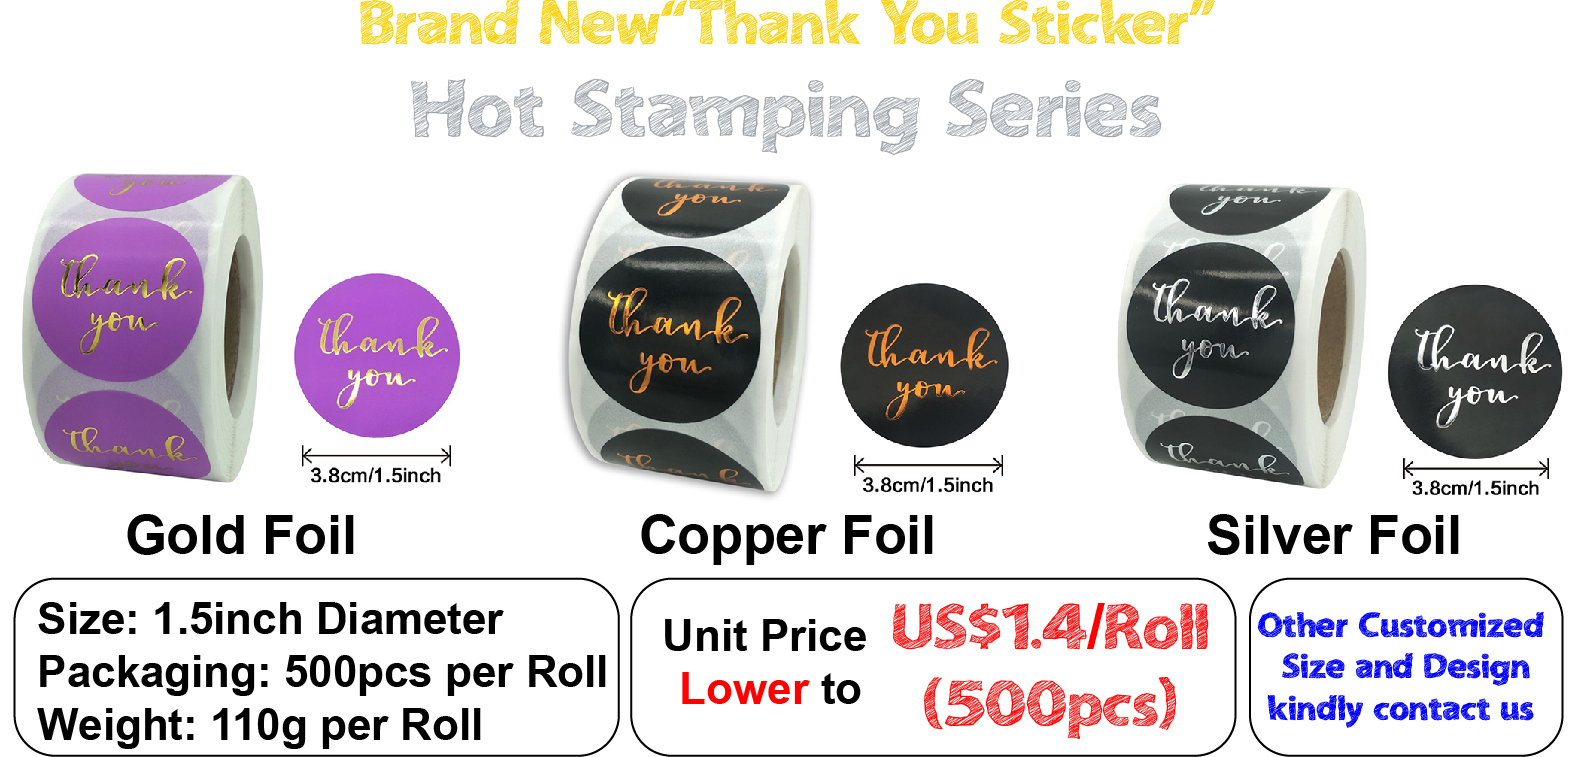 Adhesive Round Foil Printed Black 1.5 Inc Labels Roll Paper Floral Gold Pink Gift Tag Label Custom Stickers Thank You Sticker